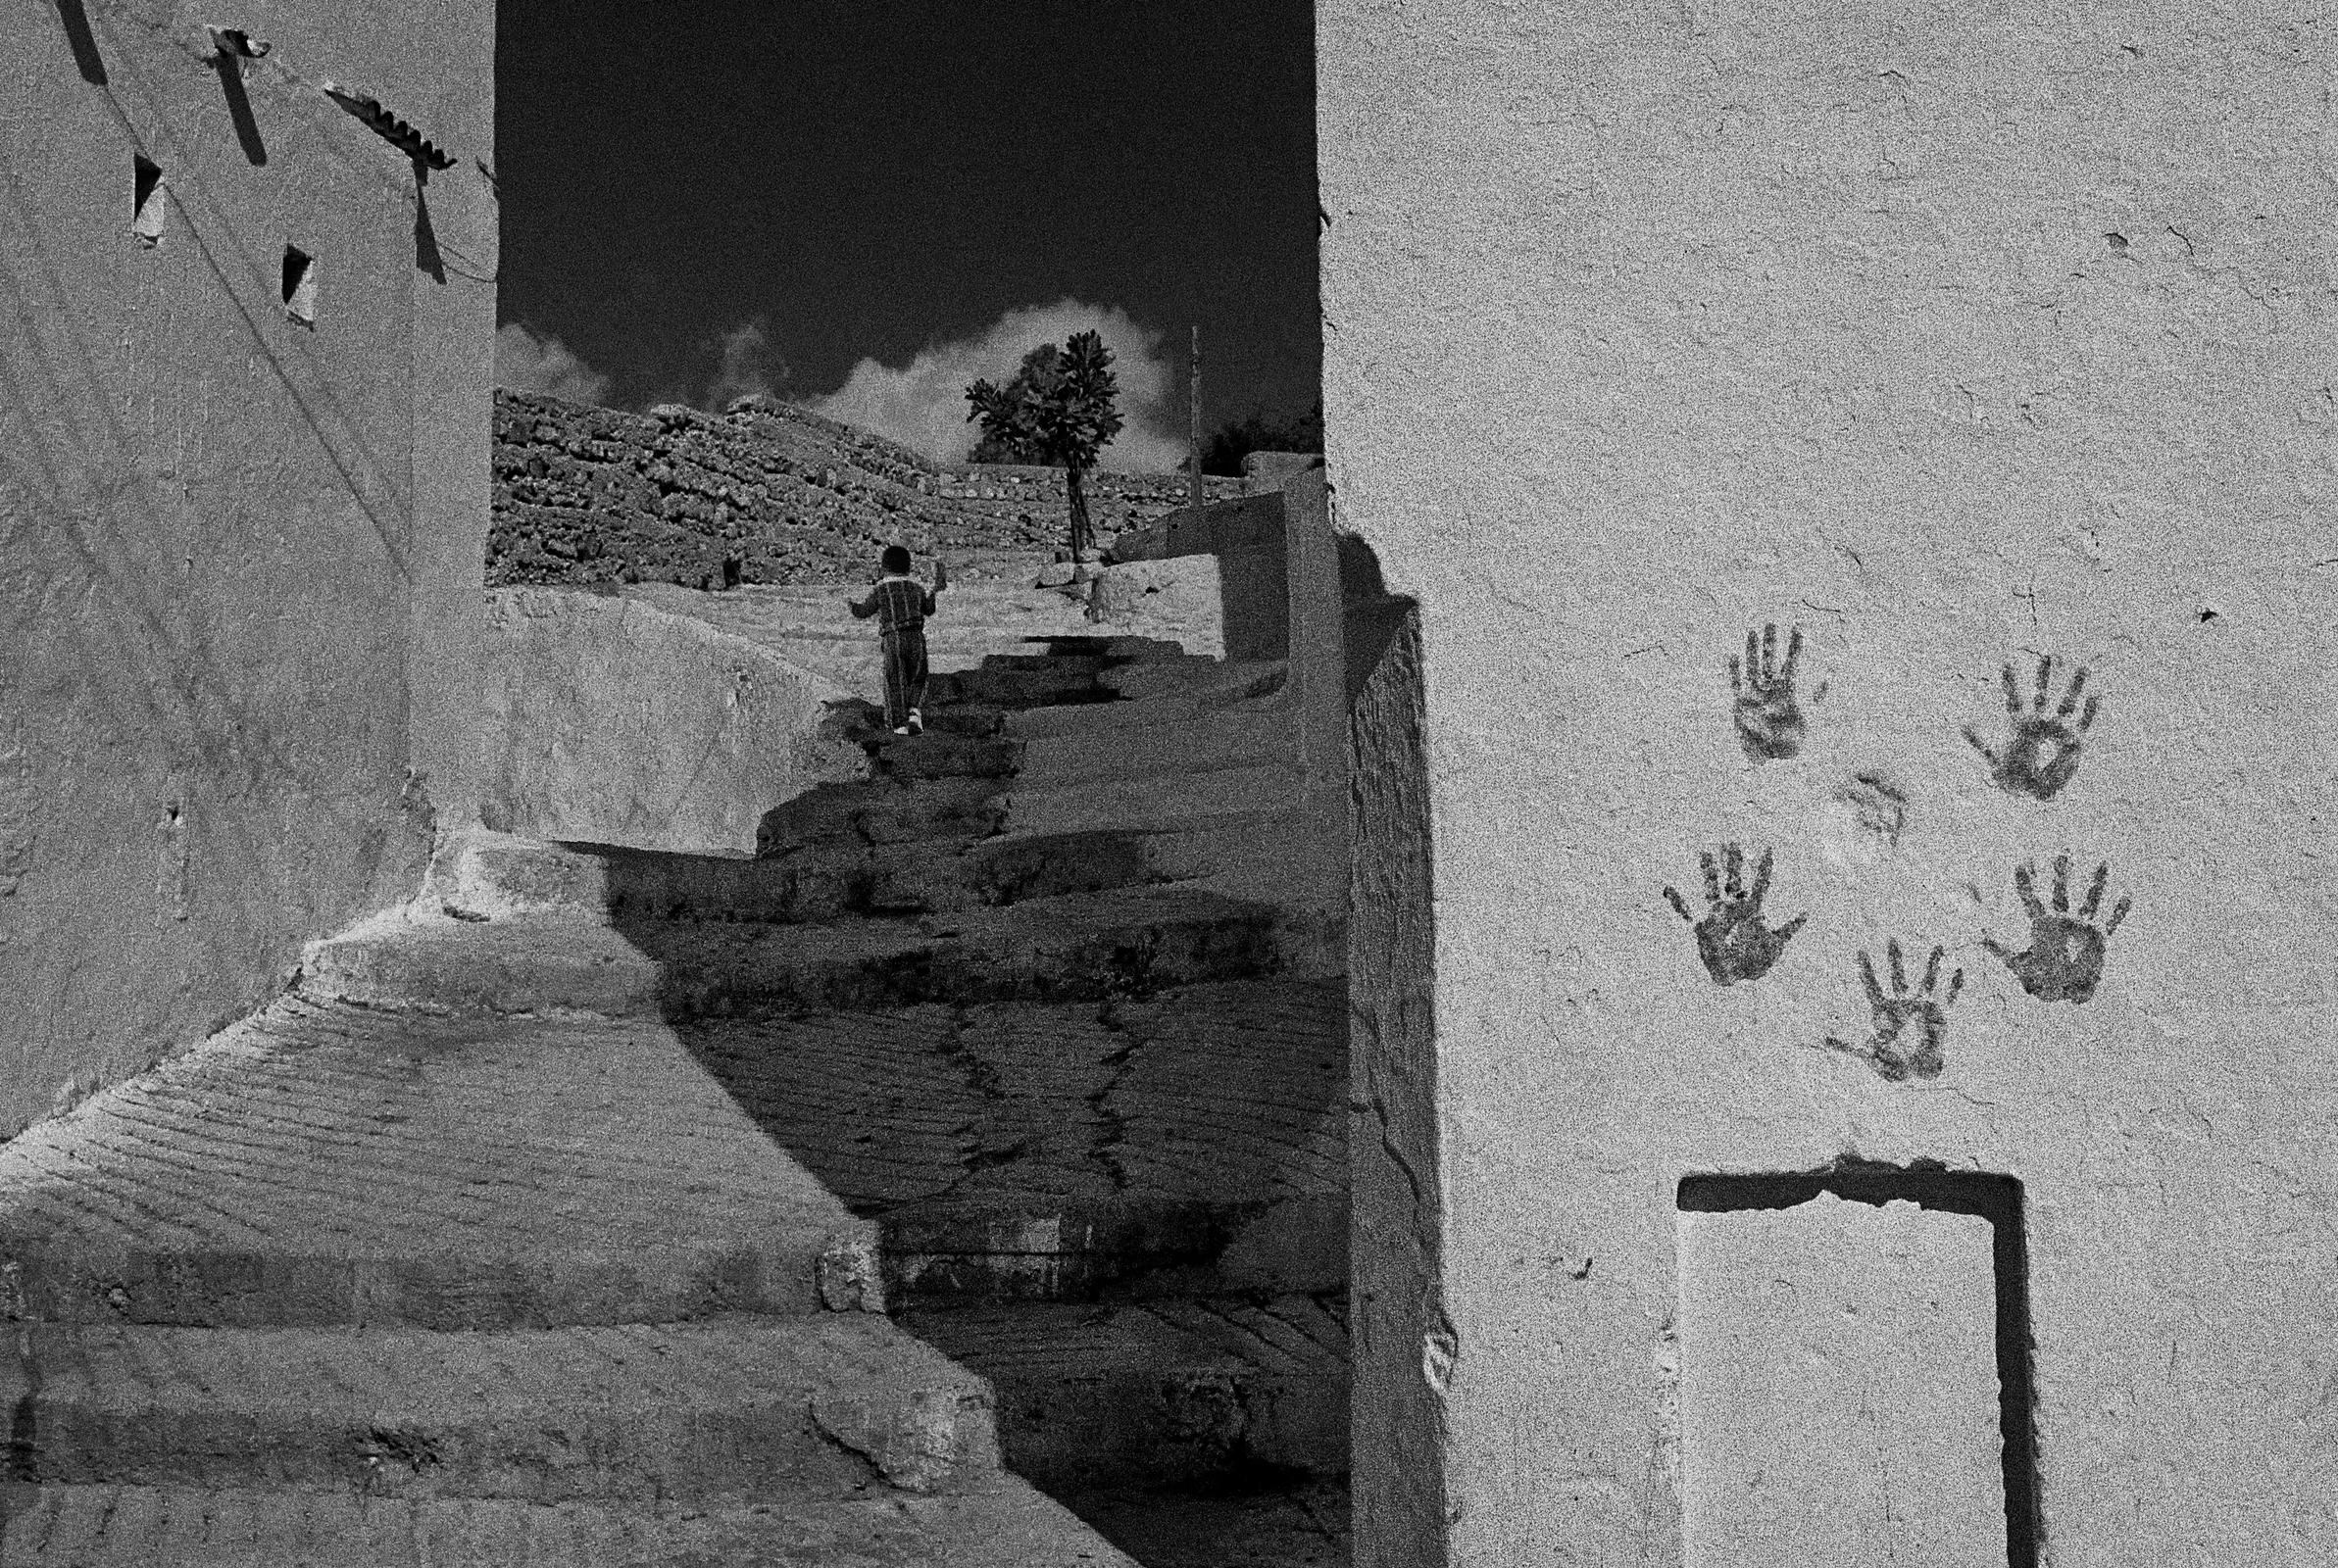 'Hand of Fatima', Chefchaouen Morocco.